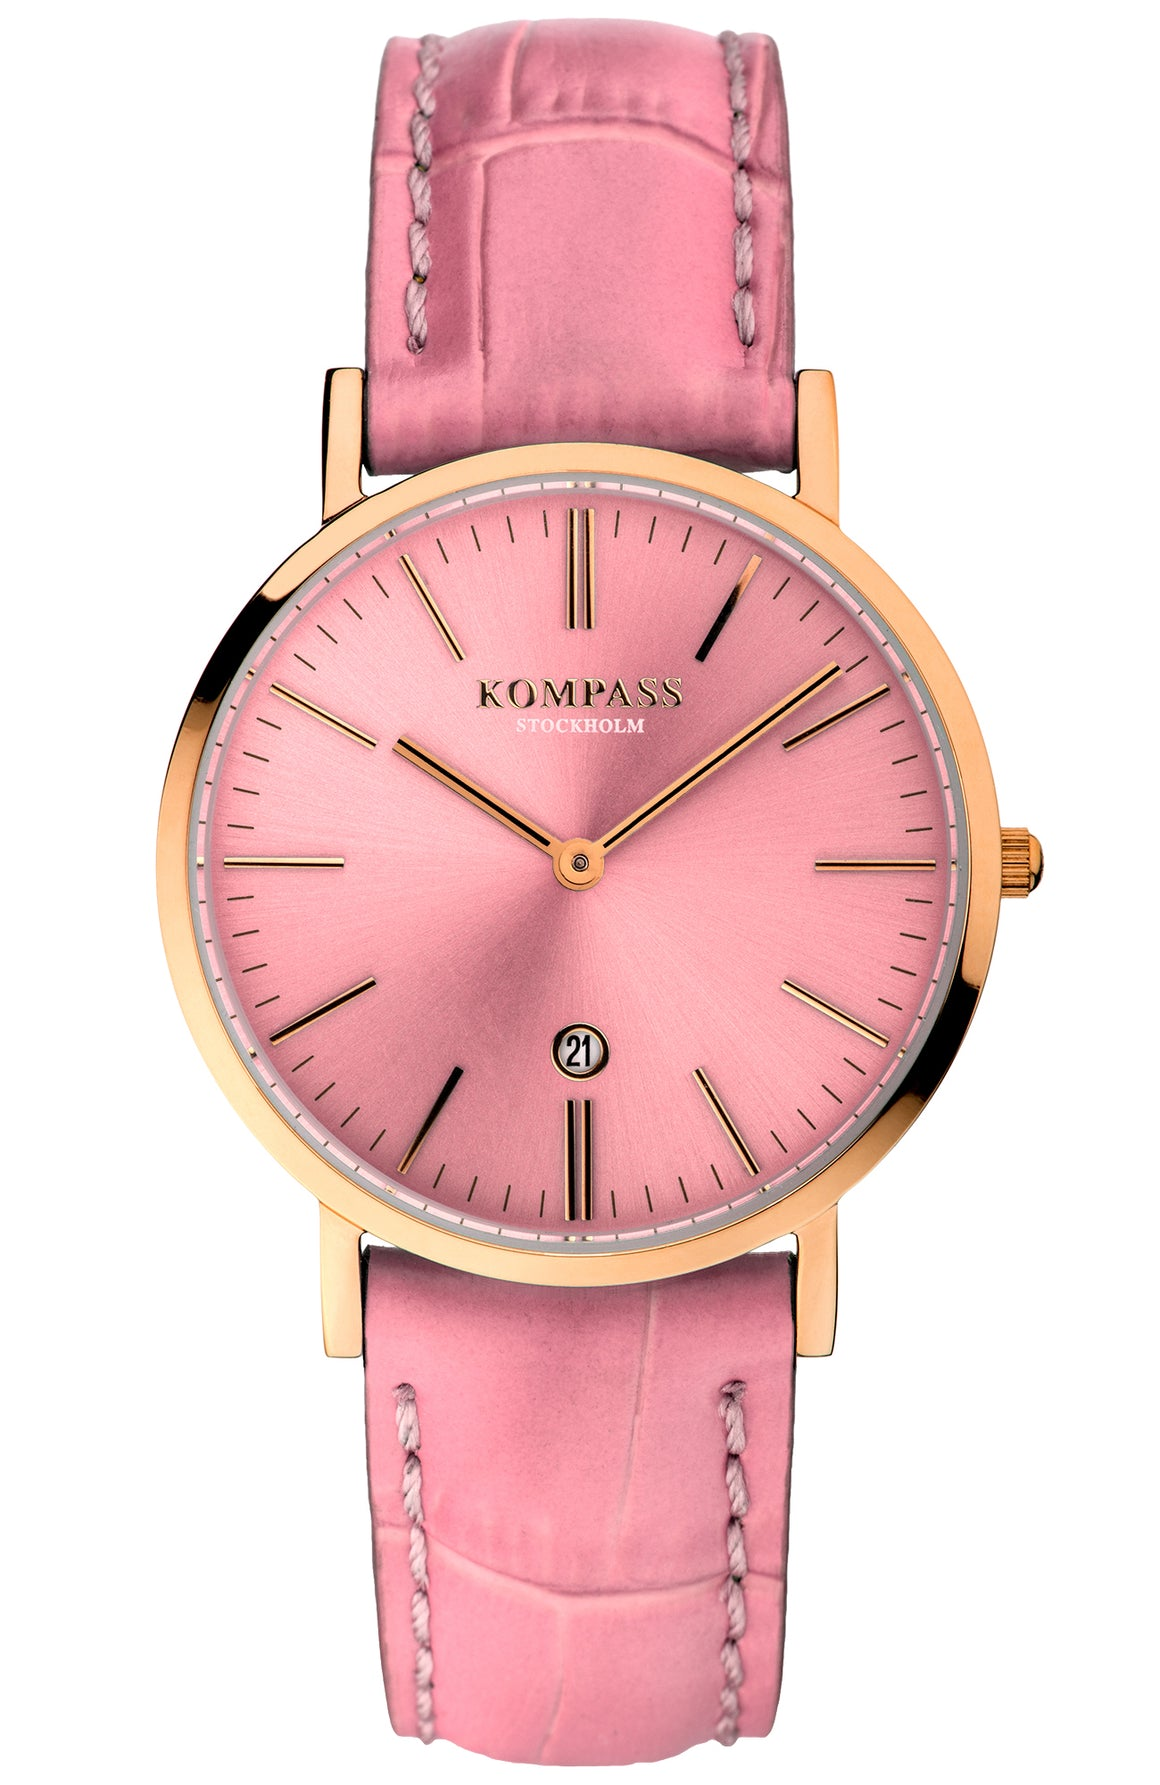 KOMPASS NAUTILUS LADIES ROSE GOLD PINK DIAL PINK STRAP